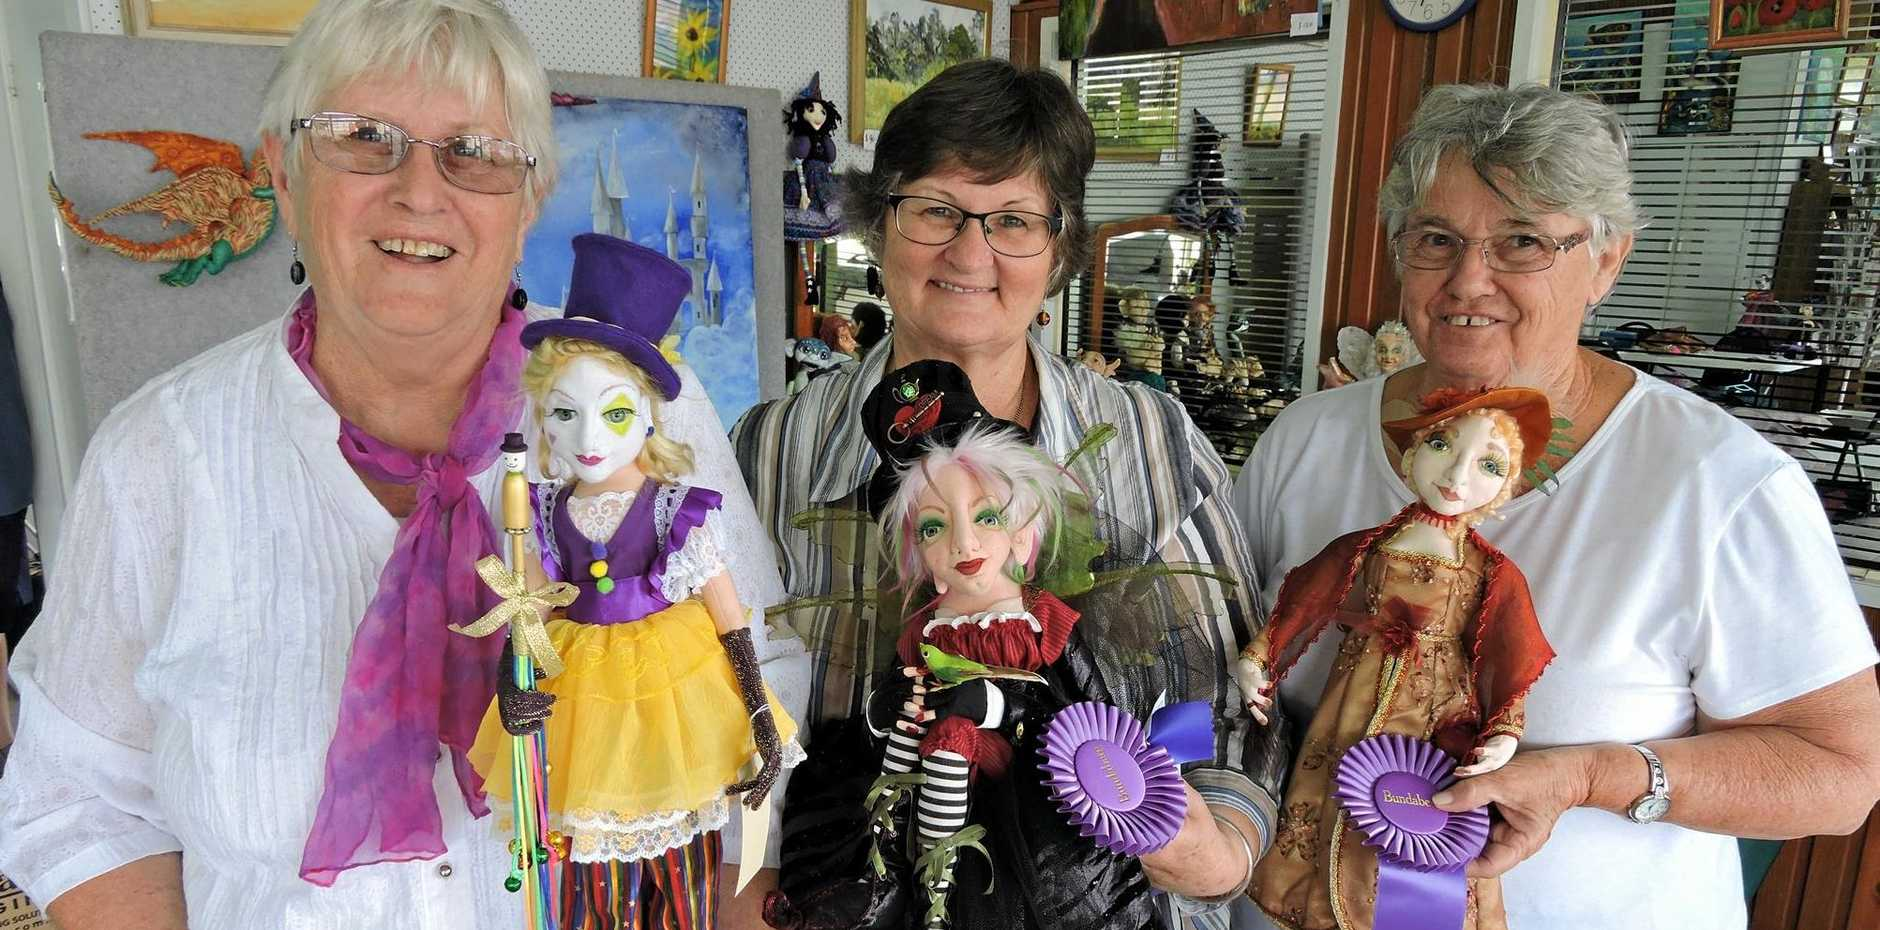 Dolls With Attitude members Robyn Williams with Carnival which won a blue rosette, Bev Lister with her Steam Punk Pixie also winning a blue rosette and Valerie Bull with the Lady of the Manor which picked up best in category and champion at the Doll and Teddy Bear Show in Bundaberg.